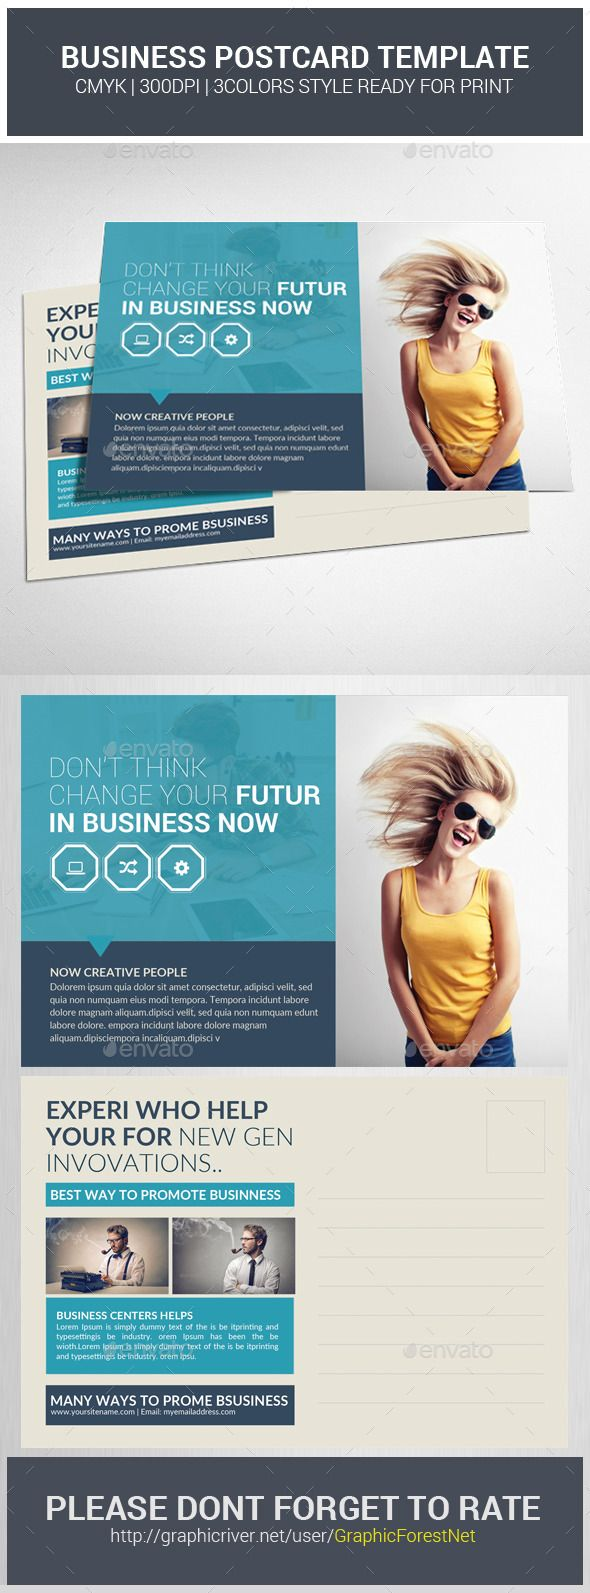 Business postcard template business postcards postcard template business postcard template design download httpgraphicriveritem business postcard template11627830refksioks fbccfo Gallery